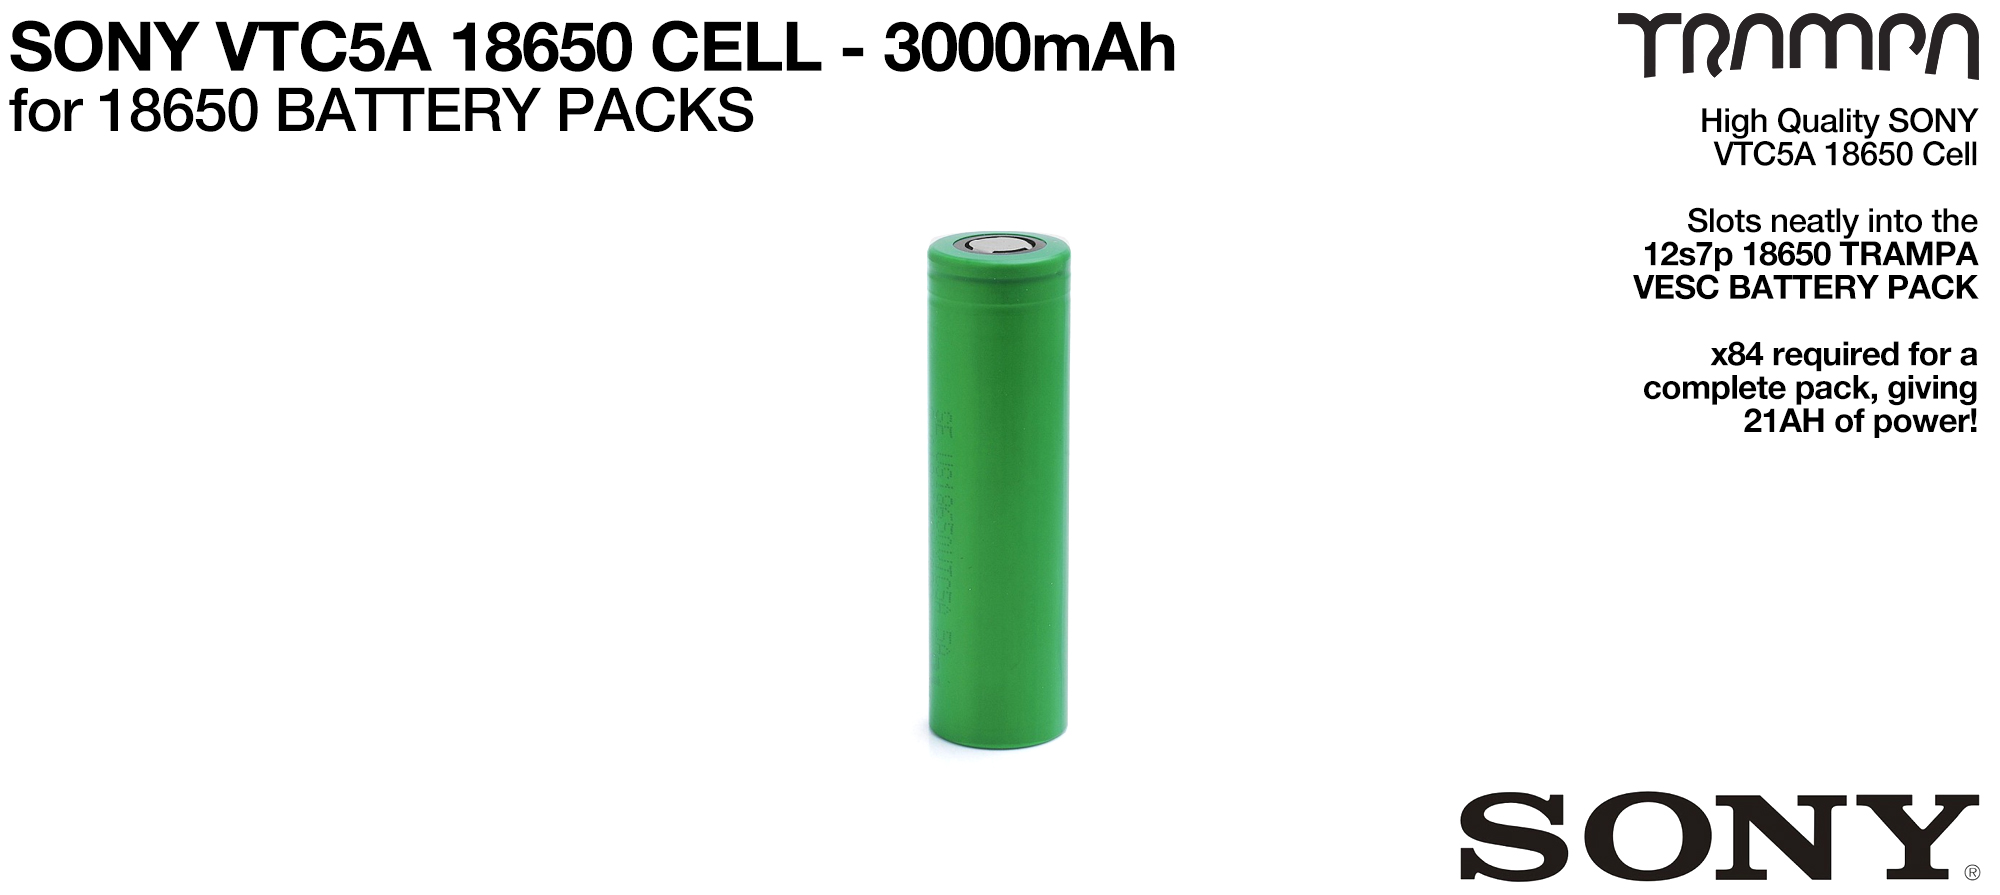 SONY VTC5A 18650 Cells 3000mAh - UK CUSTOMERS ONLY